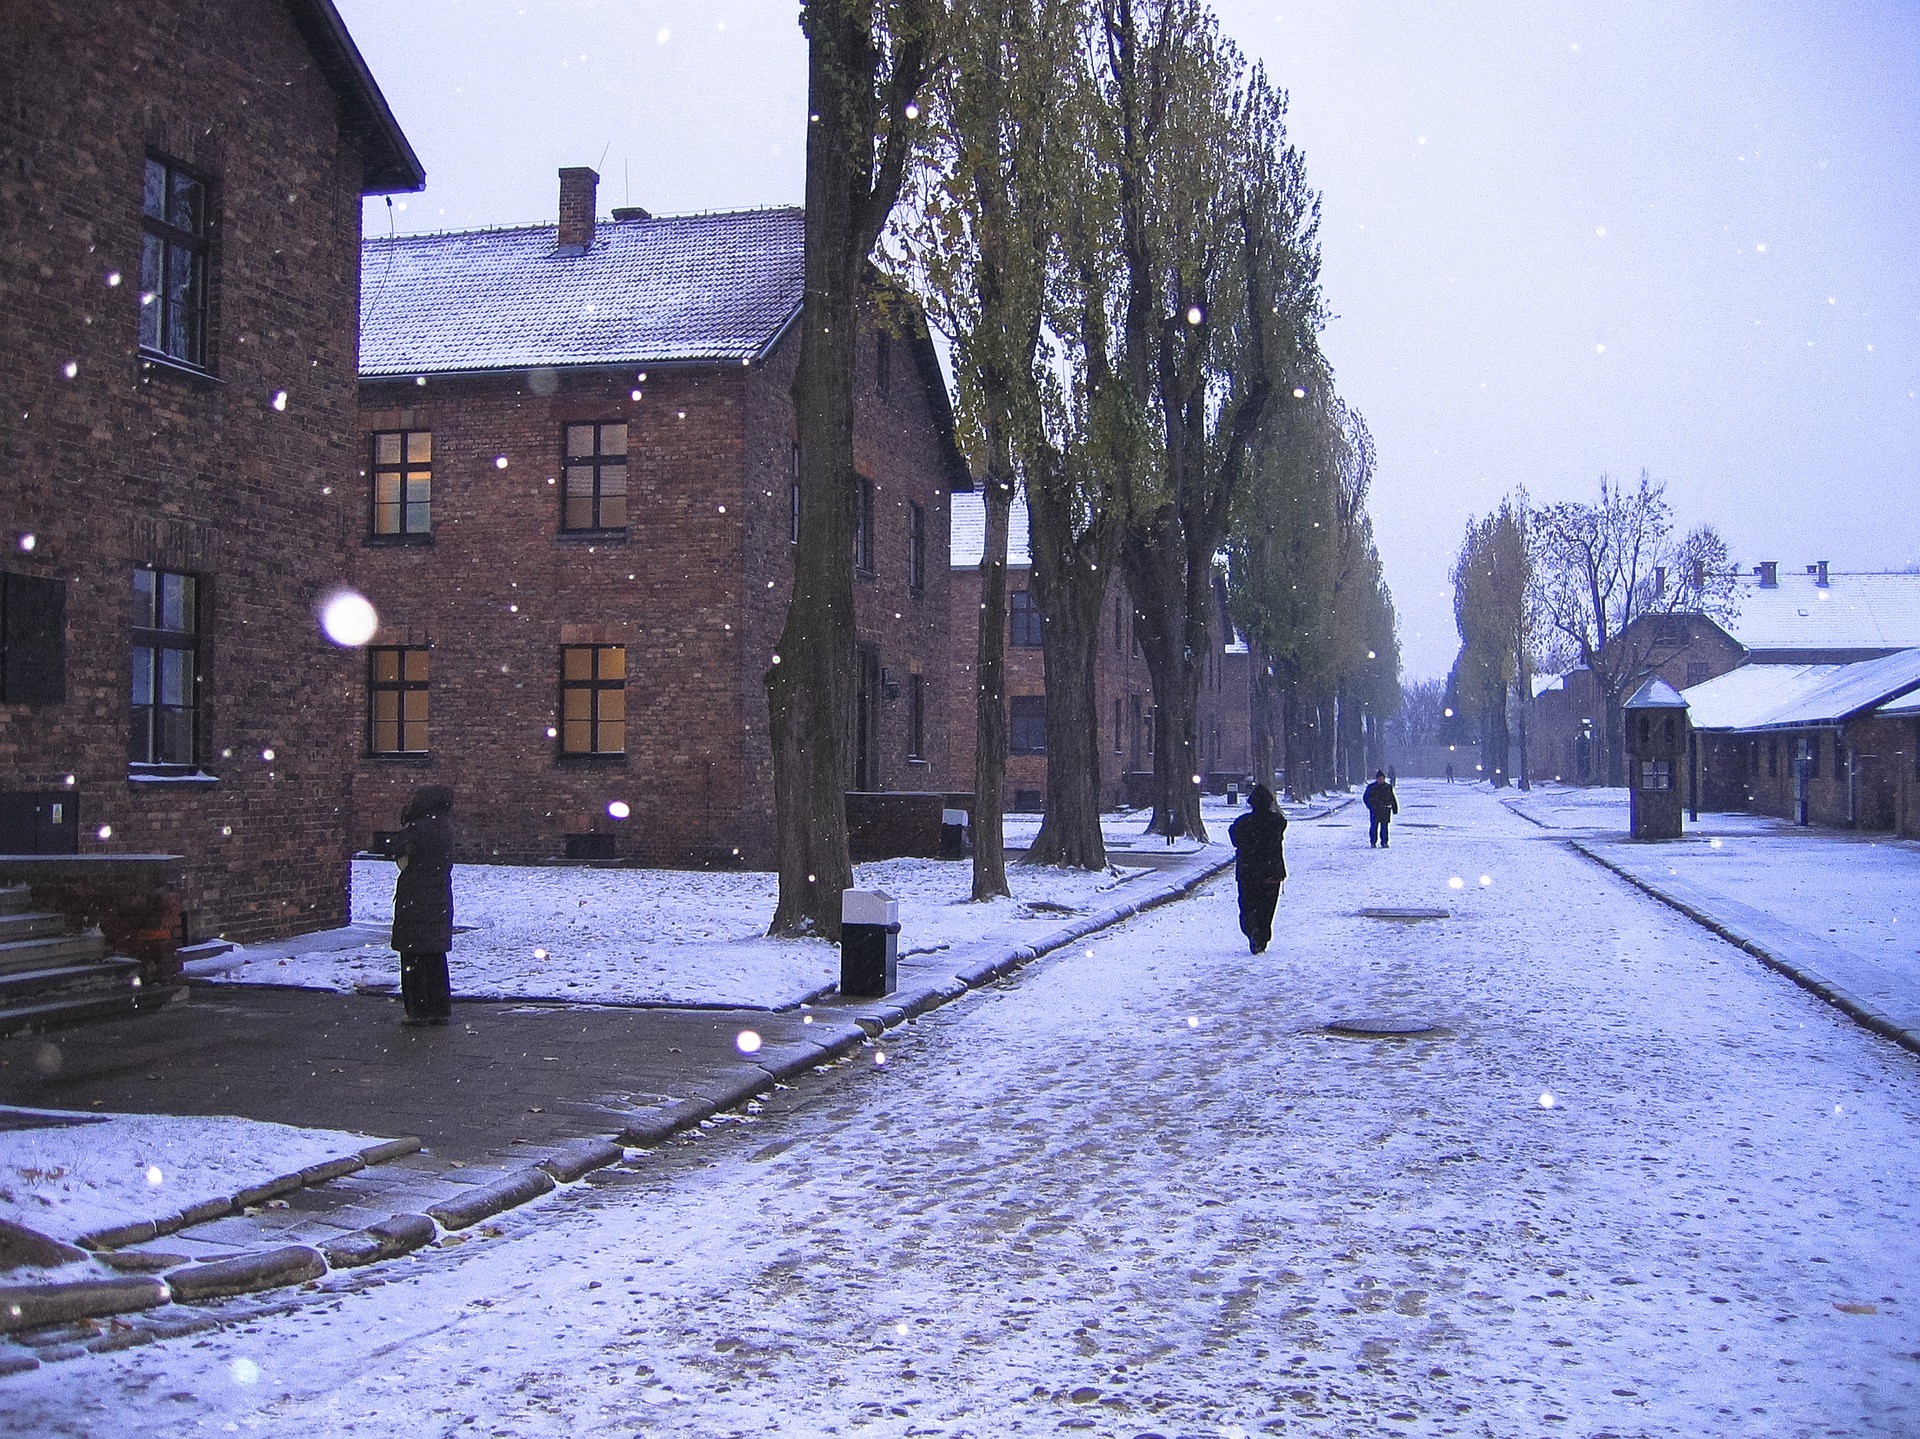 Auschwitz Poland Concentration Camp